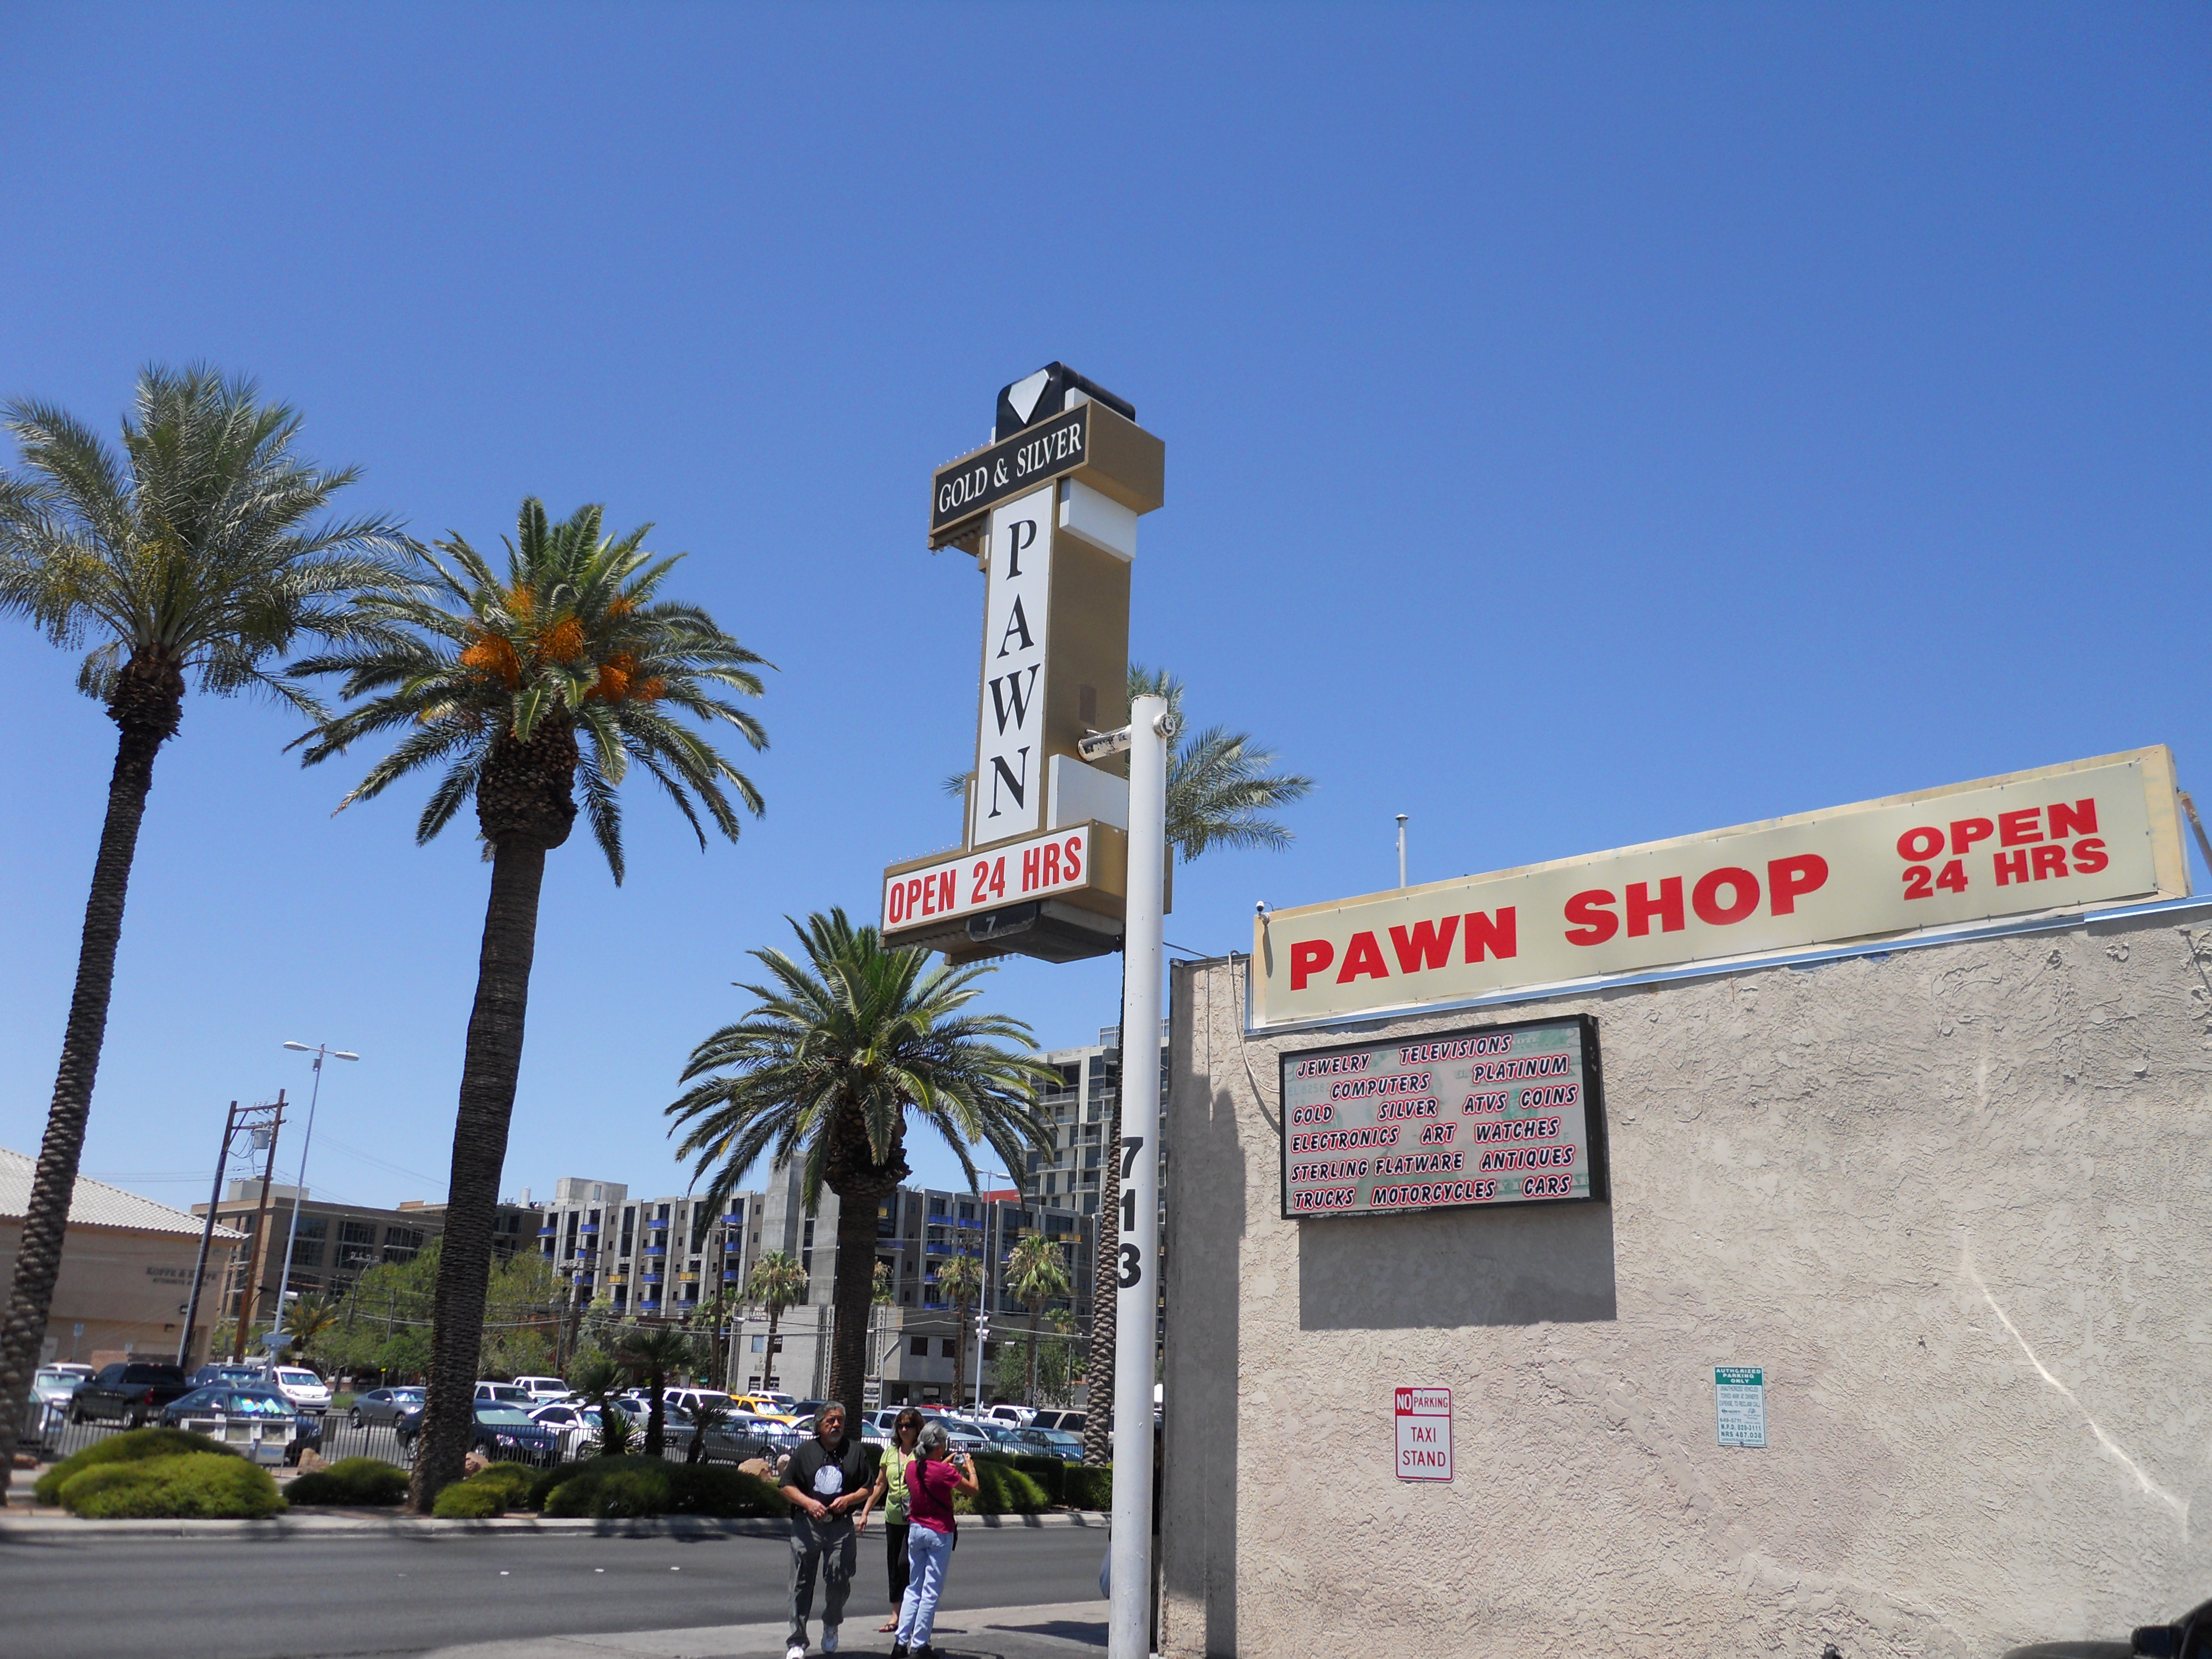 Pawn_Stars_shop_by_Mike_Salvucci.jpg